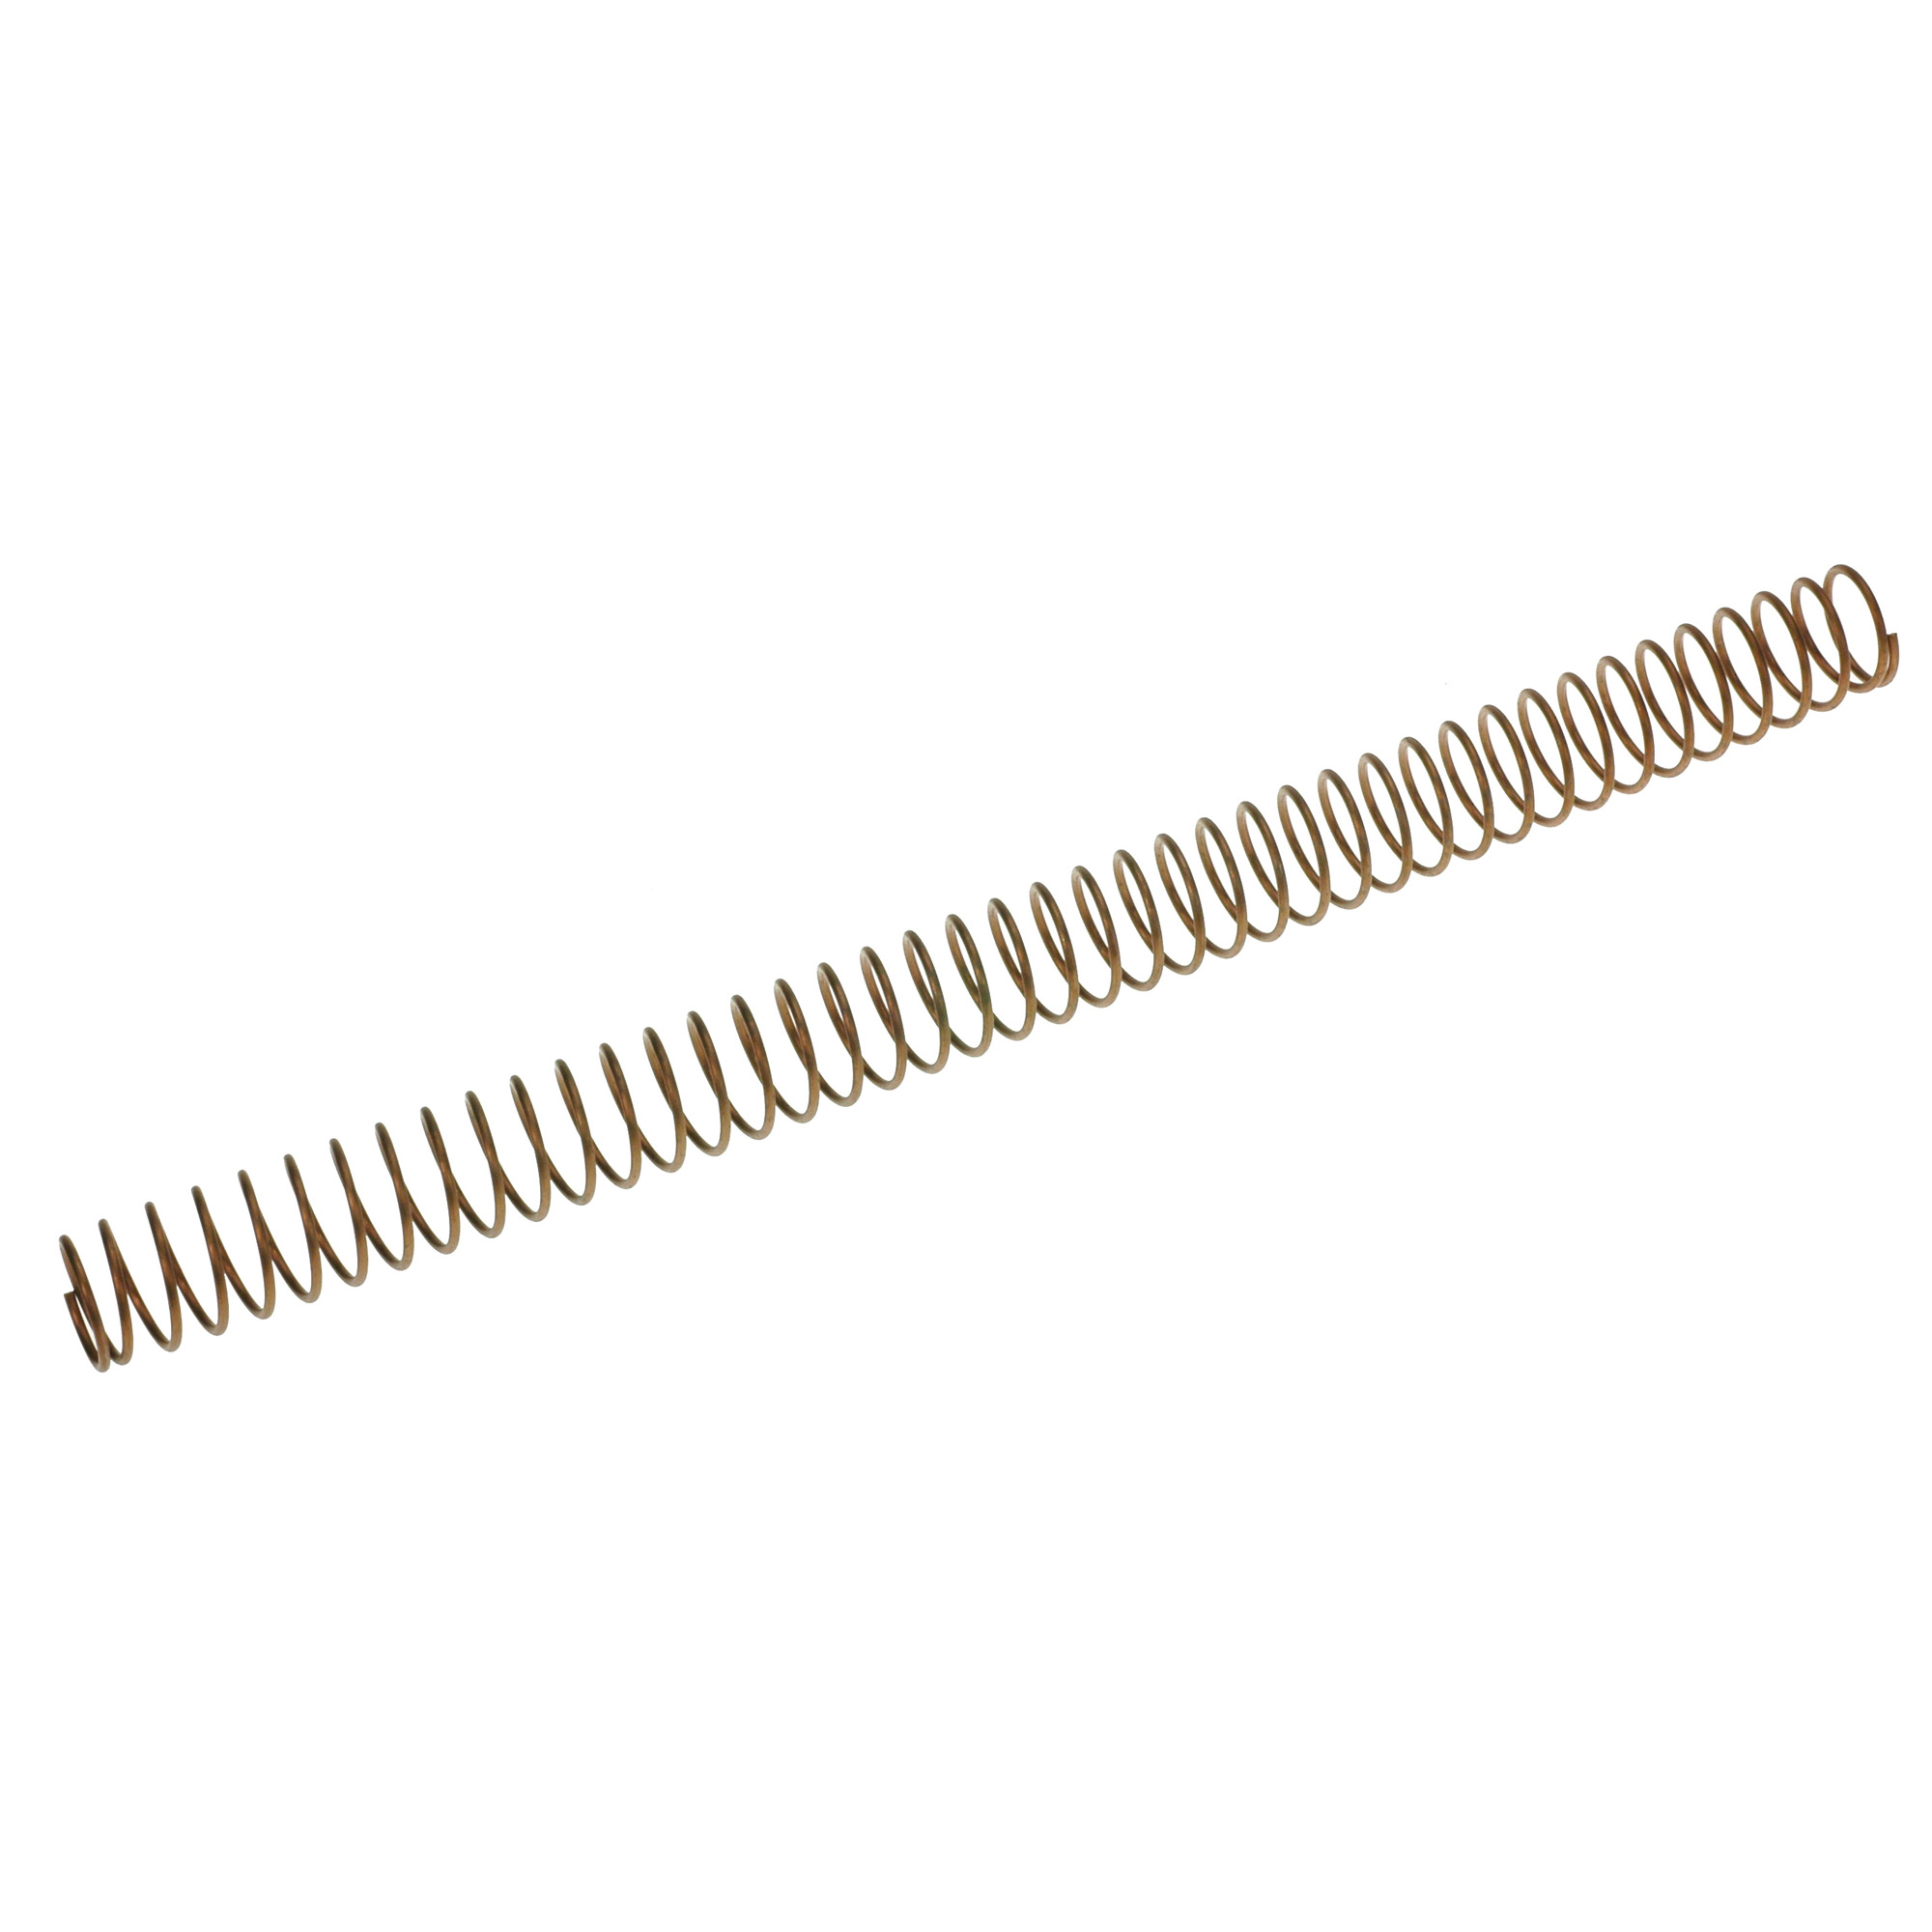 DPMS's 223 AR Standard A2 Buffer Spring is designed to work in conjunction with individuals who wish to use an A1/A2 rifle receiver extension style buffer tube with their AR-15 platform rifle.* The DPMS LR-308 platform rifles use a proprietary recoil buffer and spring; although similar looking these parts are not interchangeable with standard AR-15 rifles.